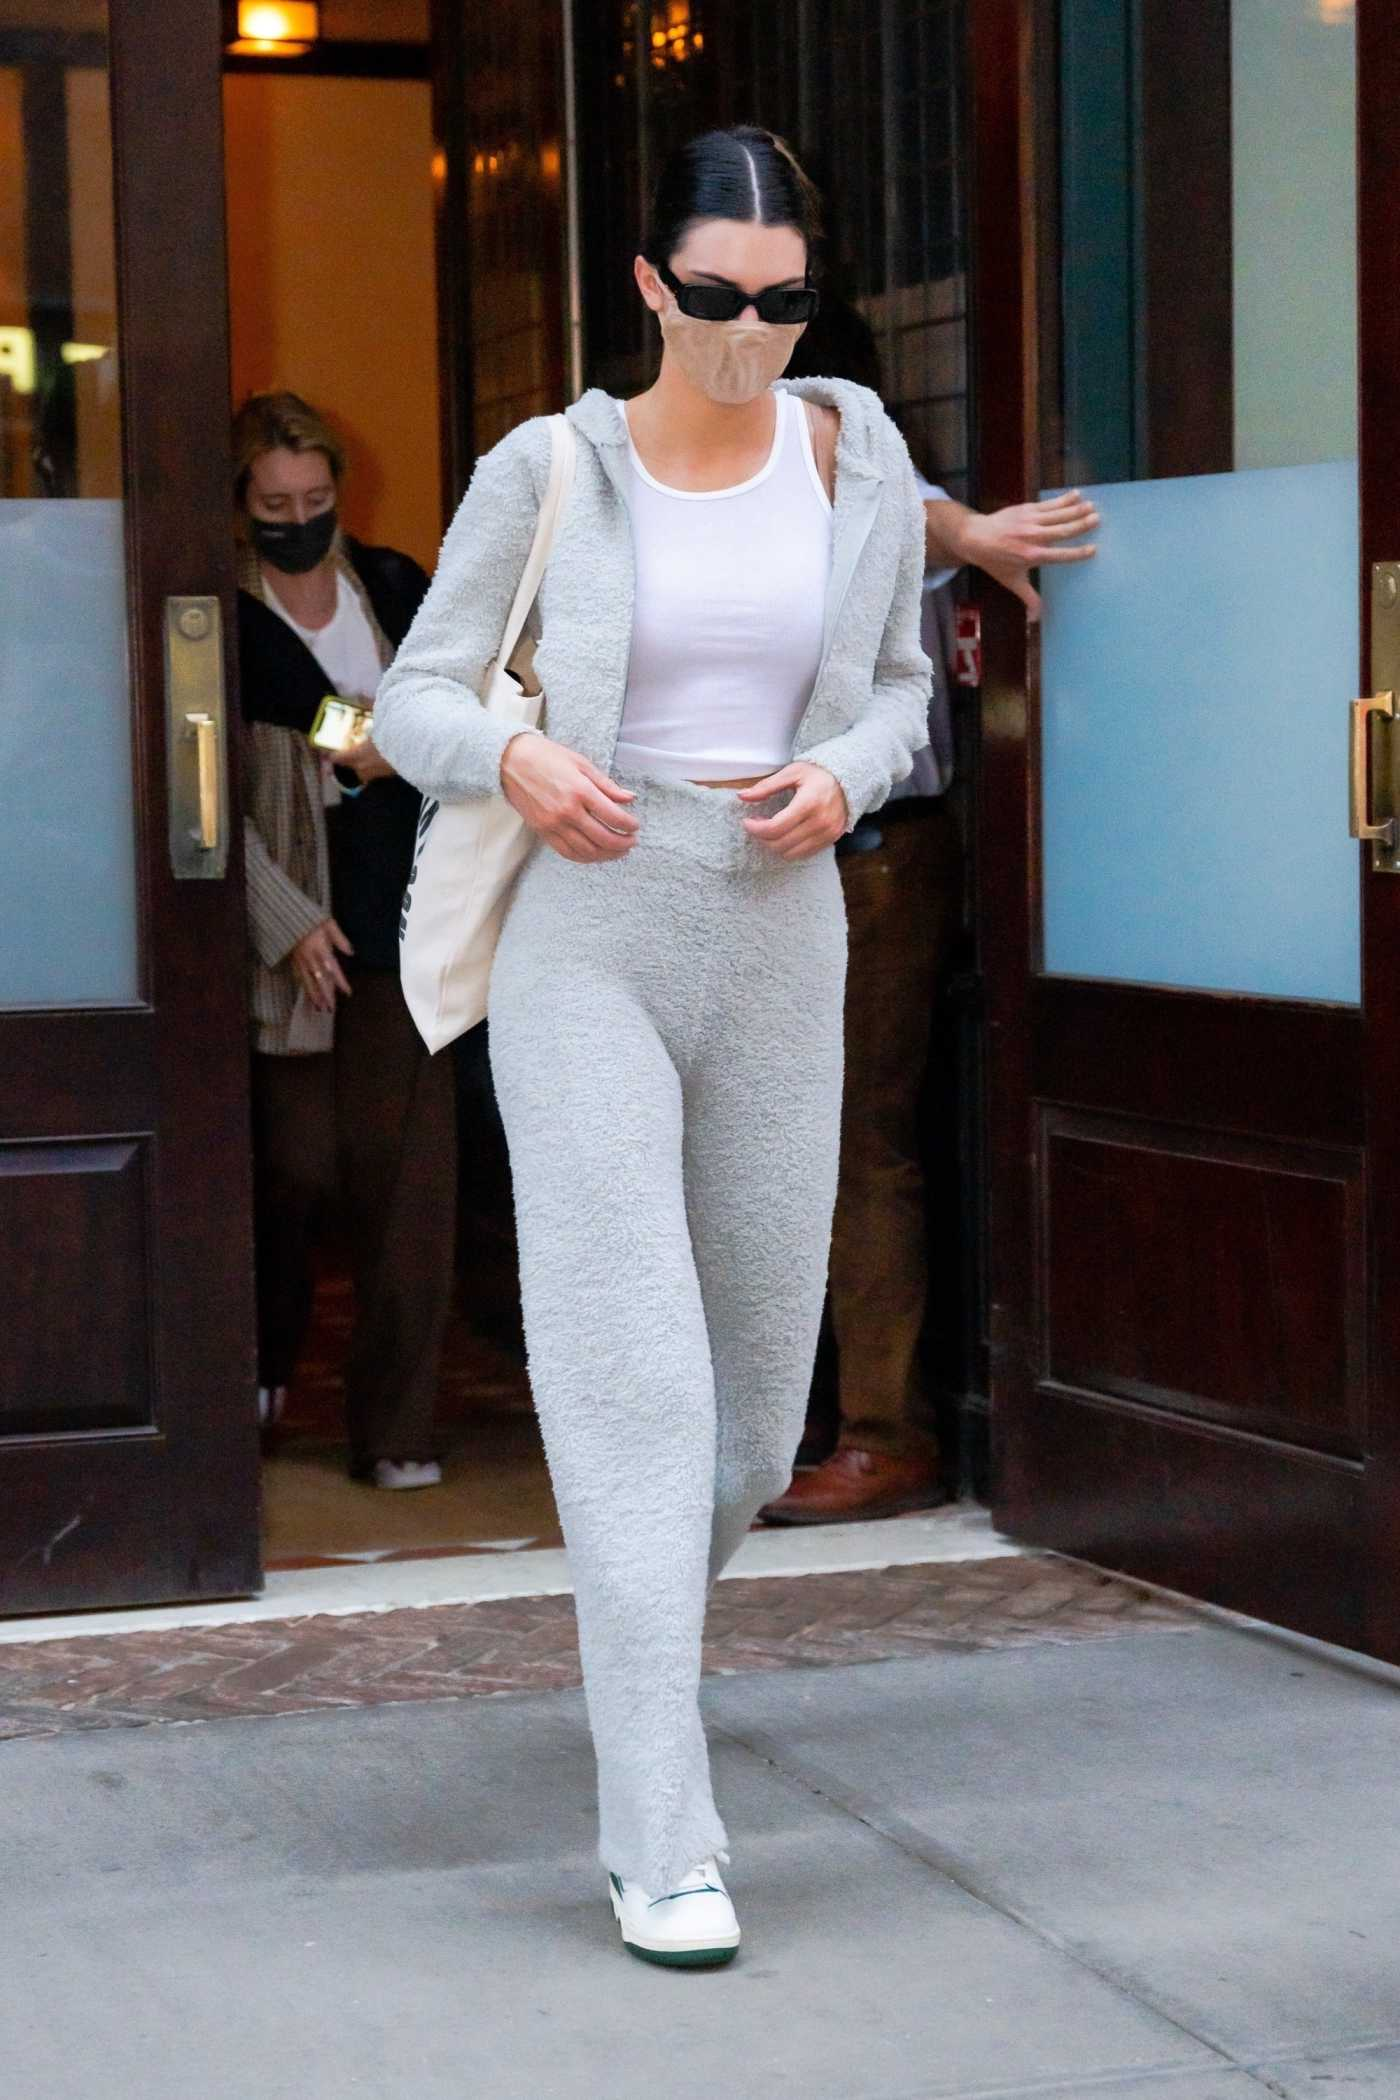 Kendall Jenner in a Grey Sweatsuit Leaves the Greenwich Hotel in New York 04/28/2021